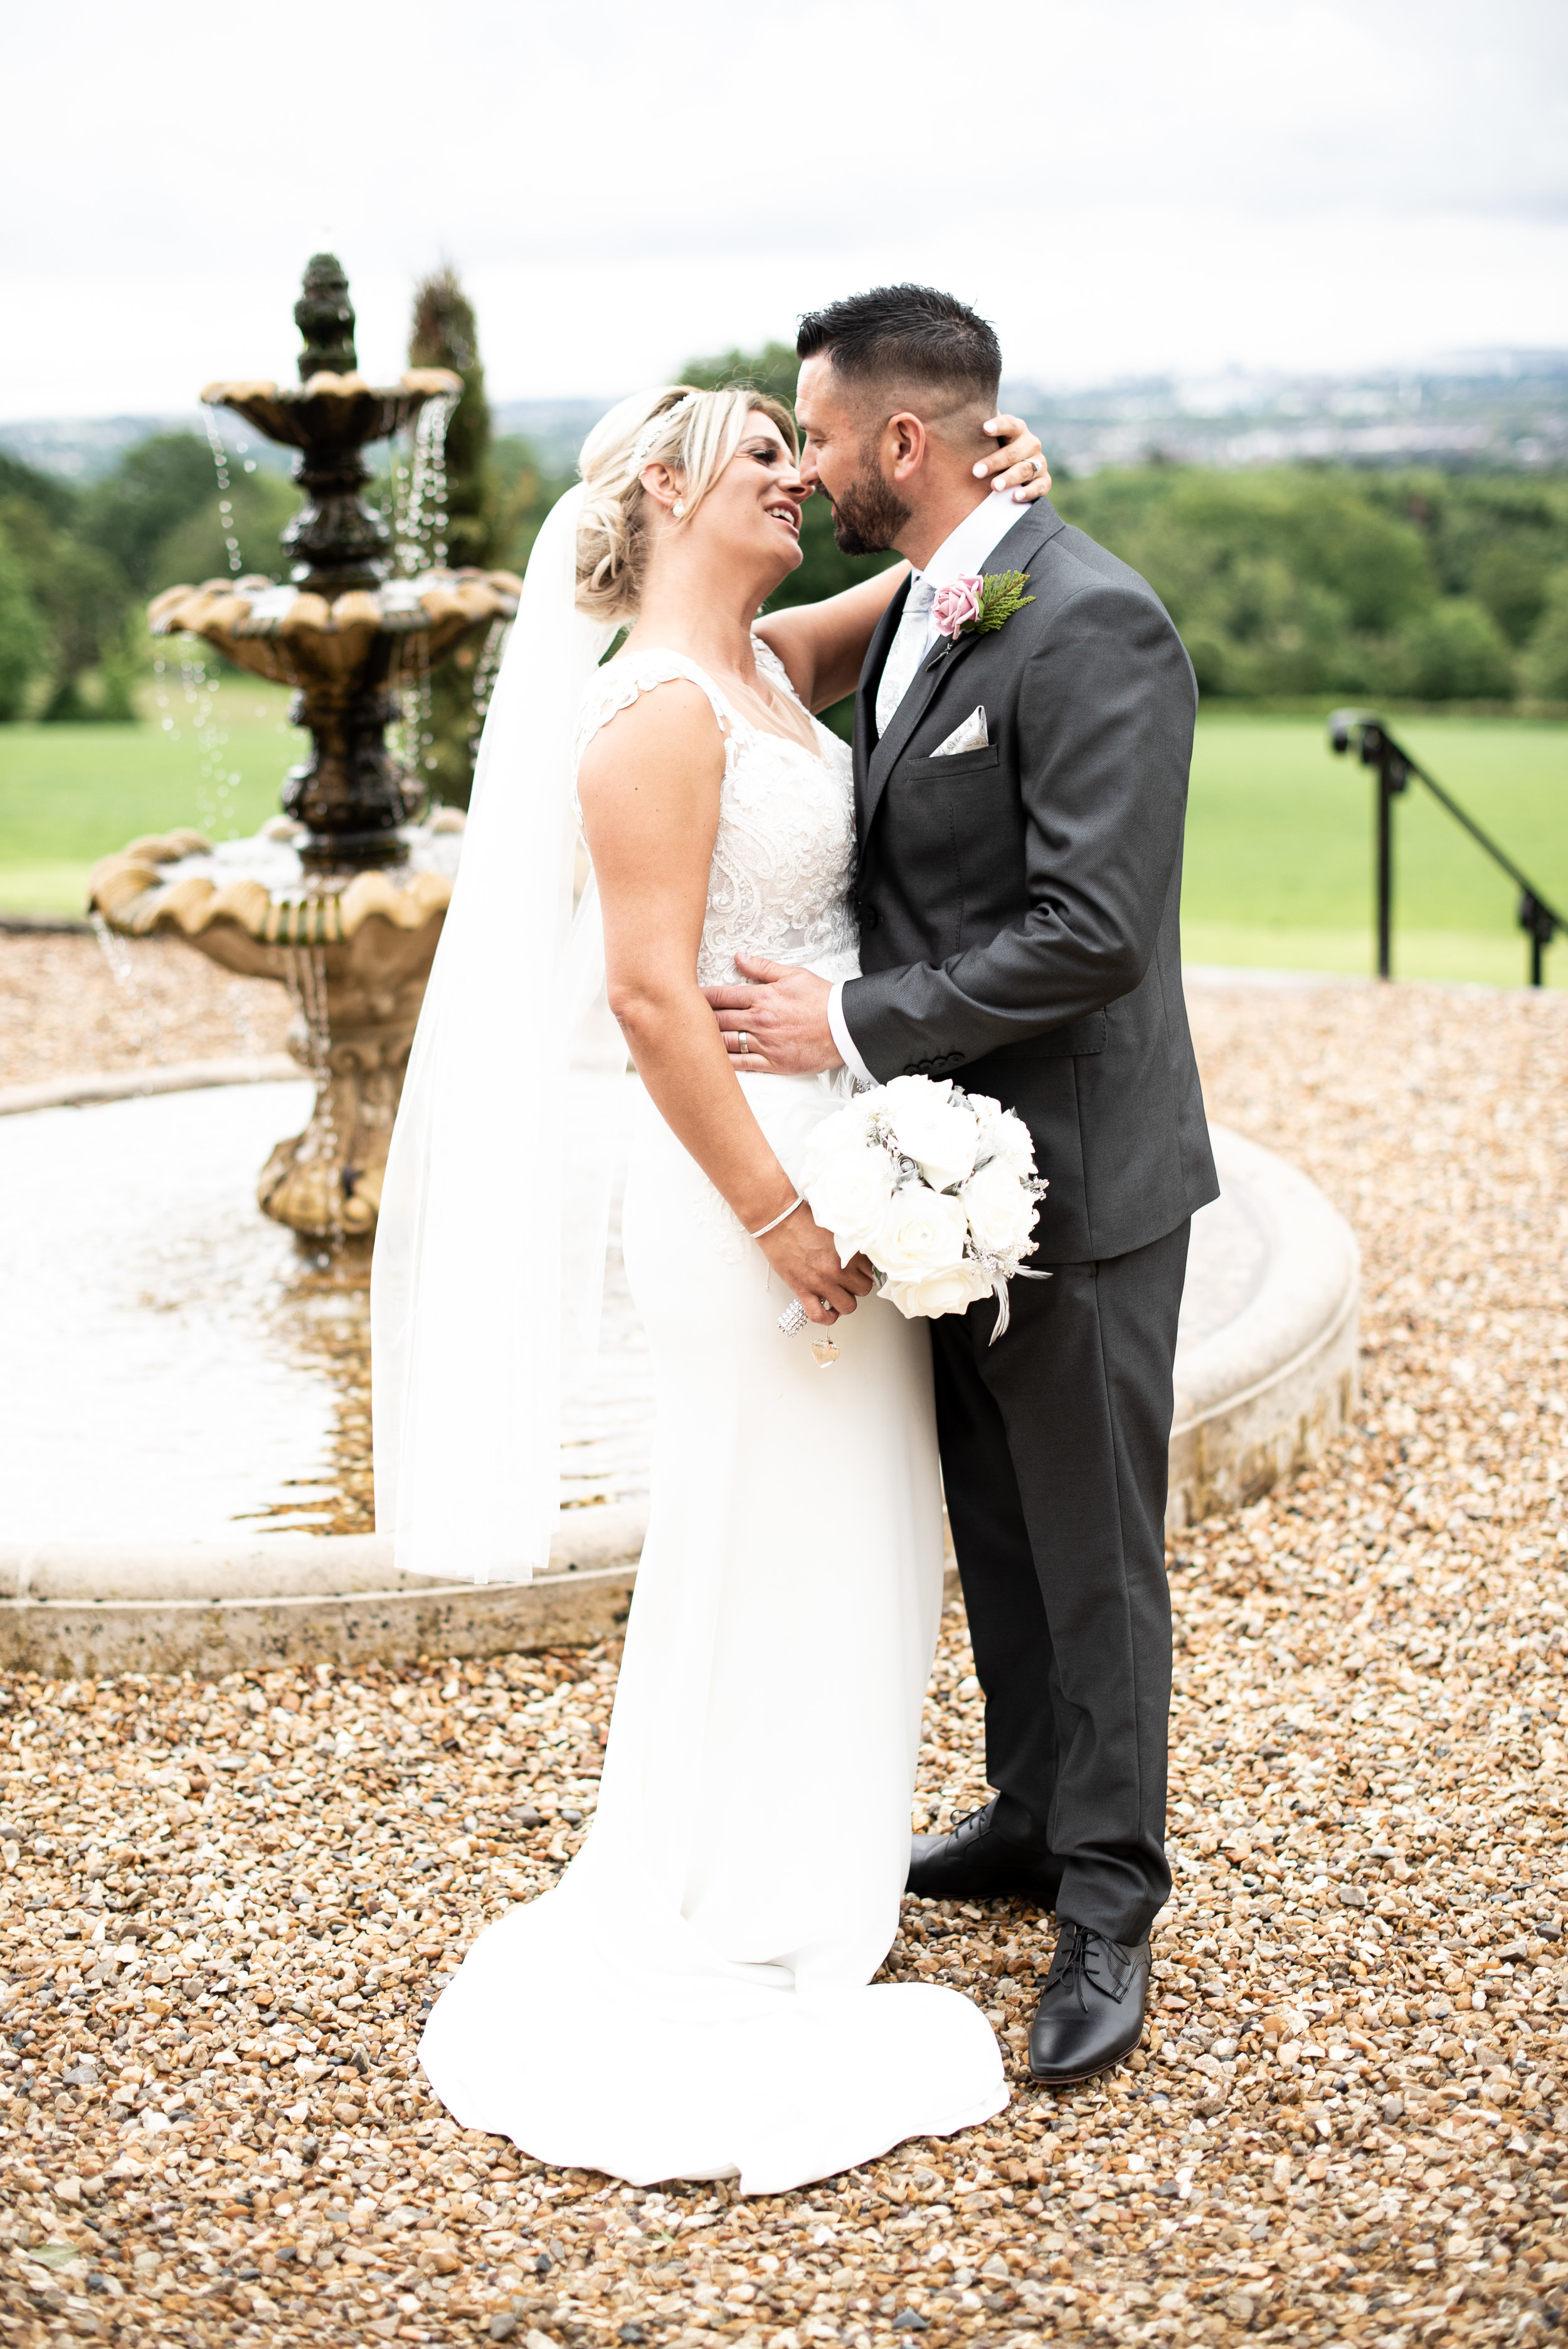 "Nicola & David - "" We had Alex for our wedding and he was excellent, made us feel so comfortable the whole day and our guest, highly recommend Alex, will also be using Alex for some family photos in the future. ""⭐⭐⭐⭐⭐"